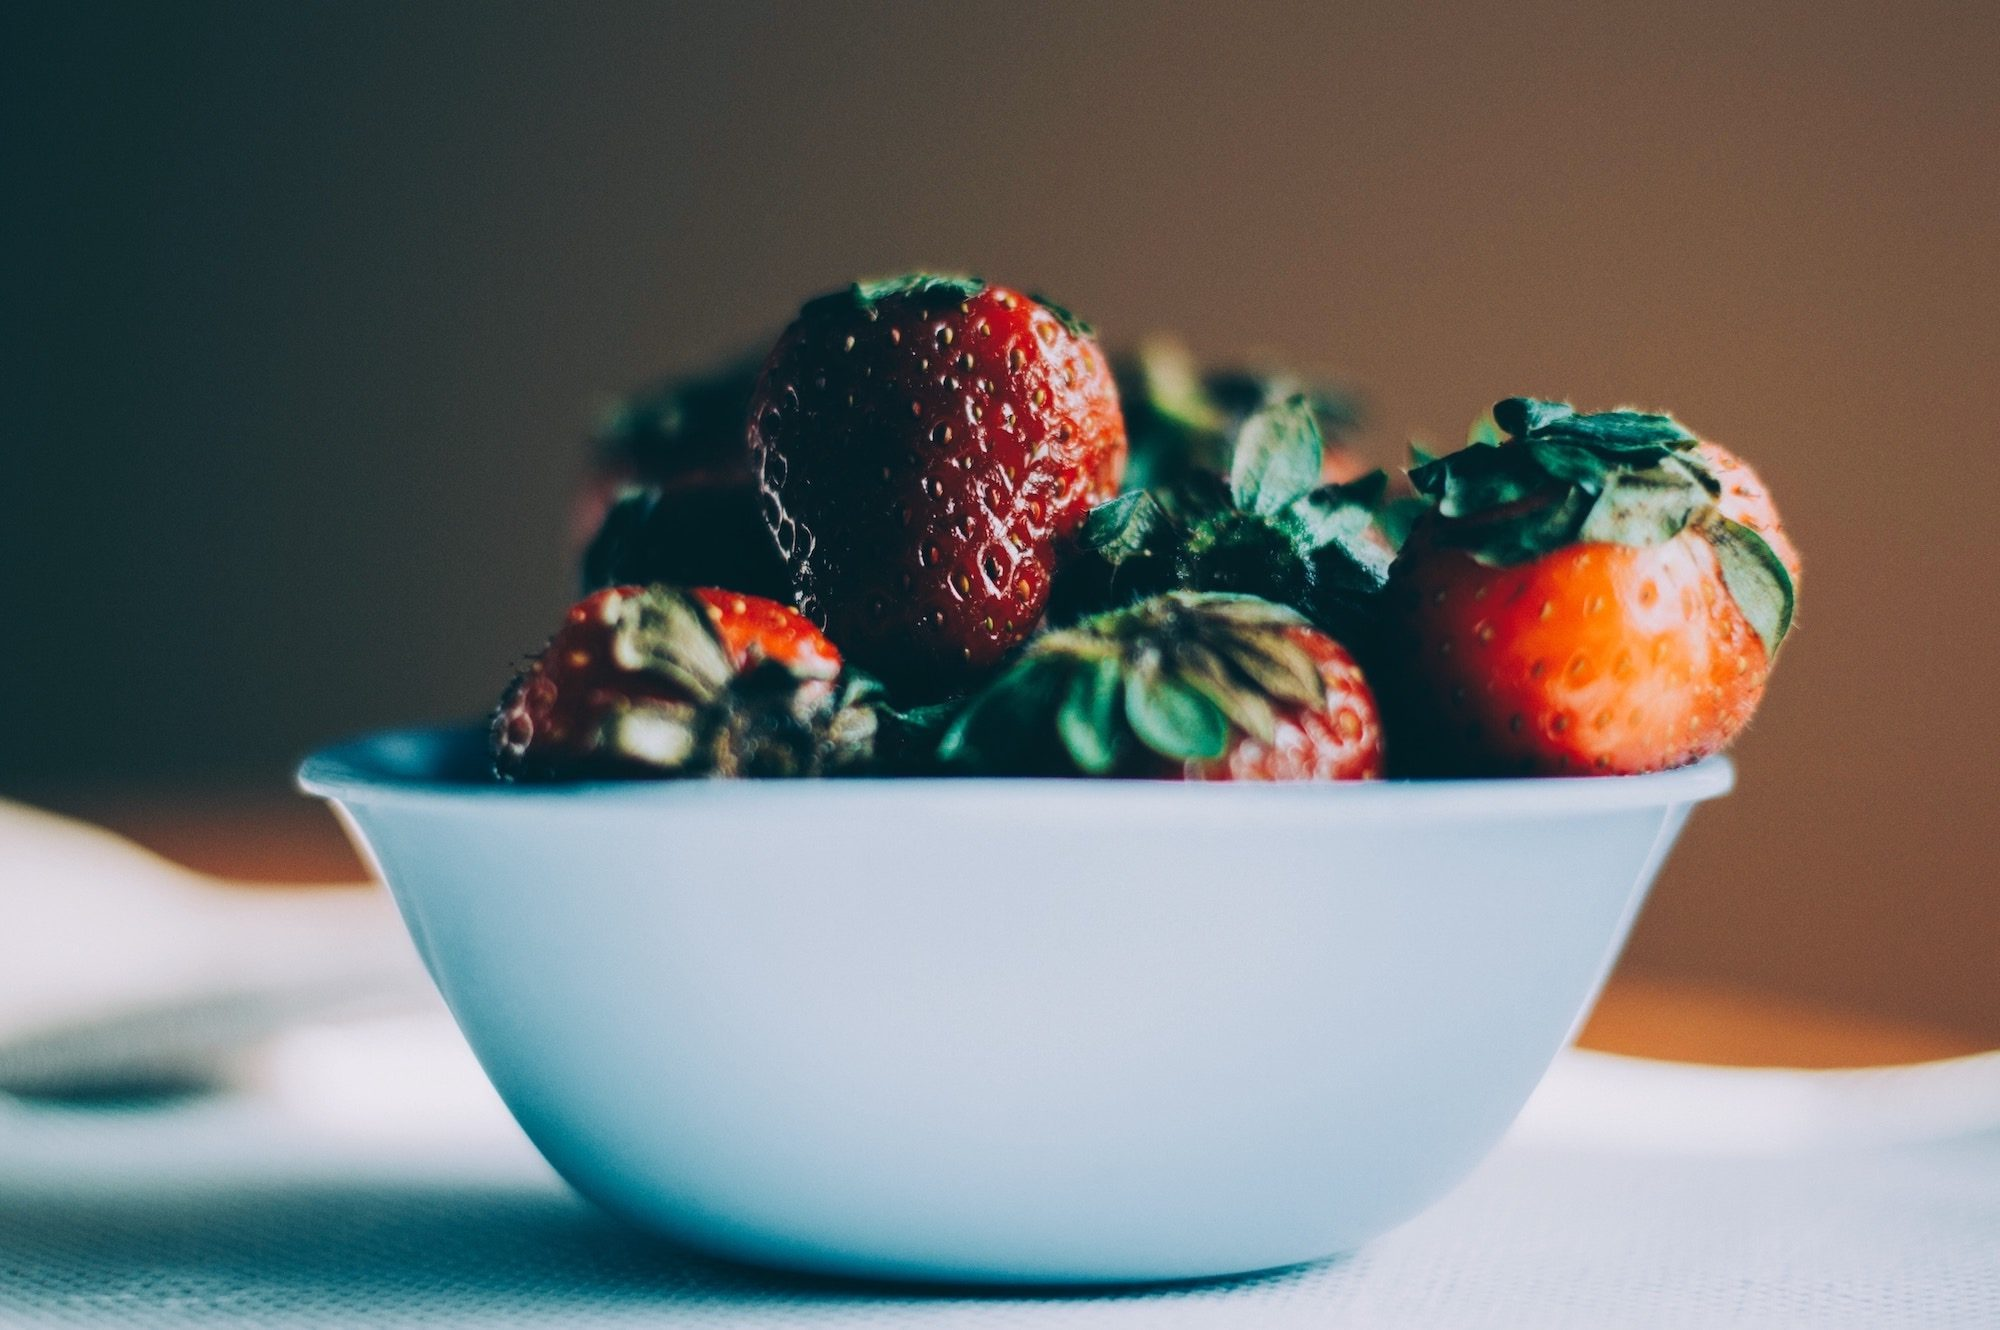 A bowl of ripe hand-picked strawberries on a table.